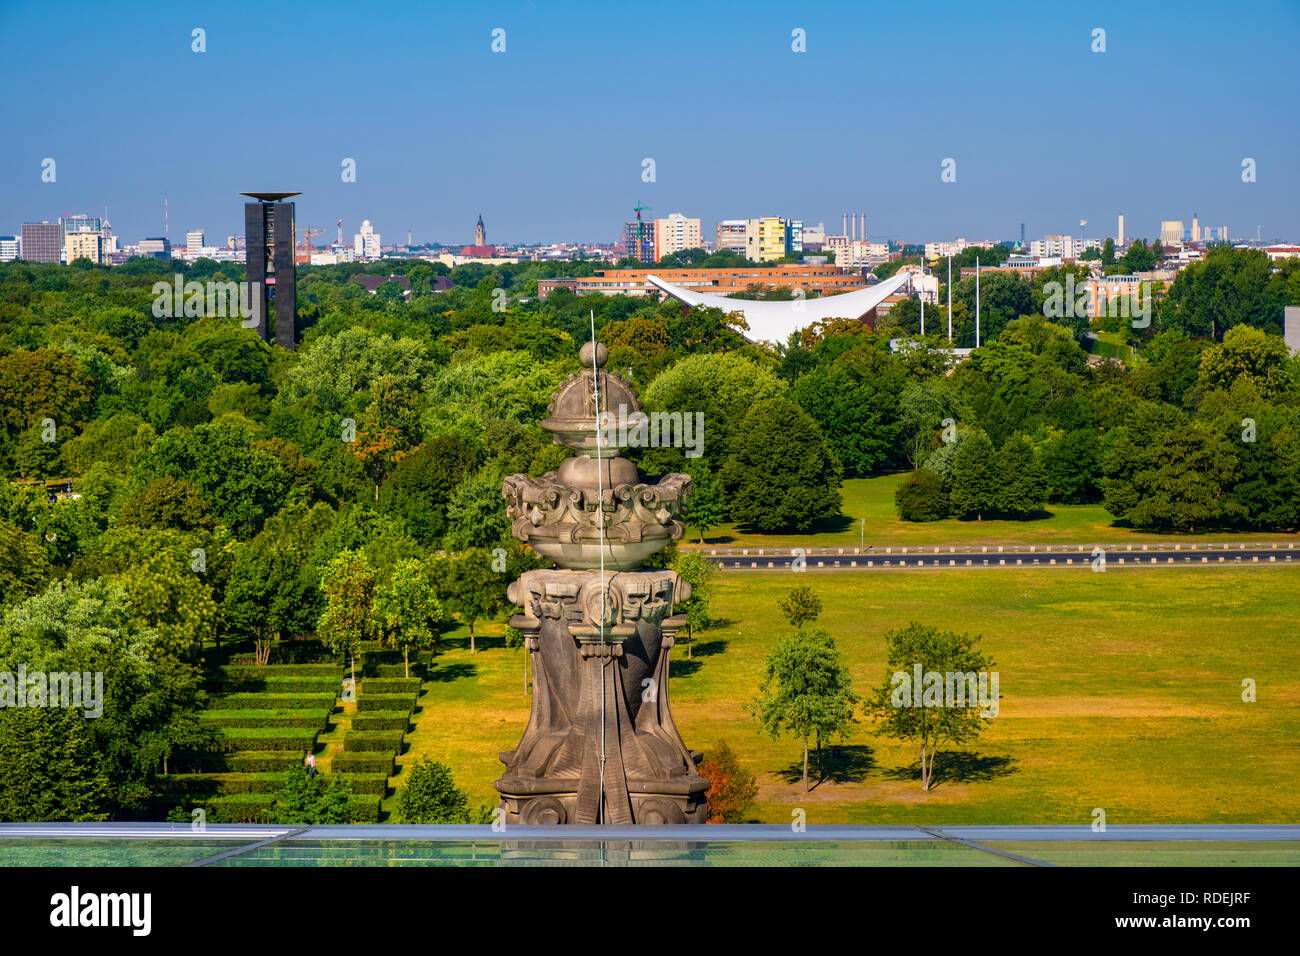 Berlin, Berlin state / Germany - 2018/07/31: Panoramic view of the Groser Tiergarten park with modern House of the World's Cultures - Stock Image